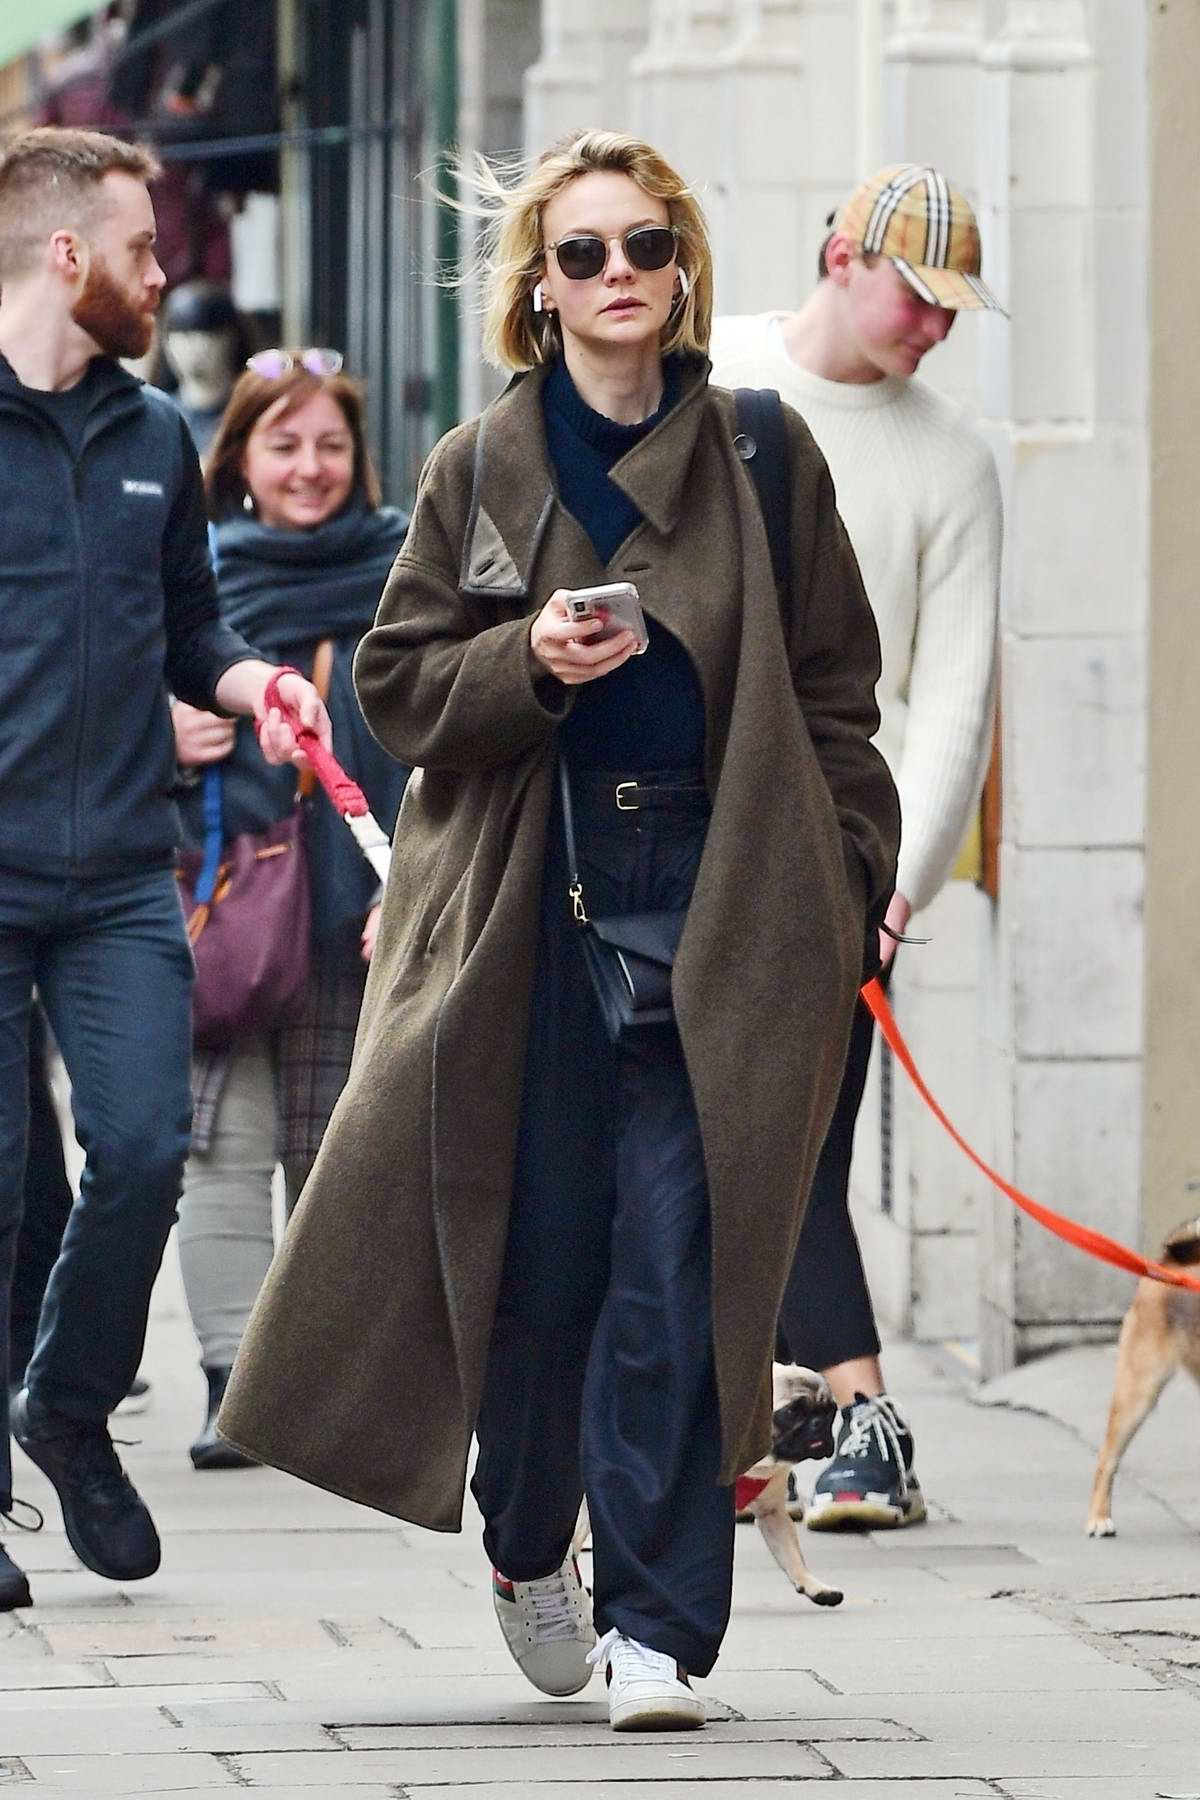 Carey Mulligan sports a high fashion look as she steps out in Notting Hill, London, UK